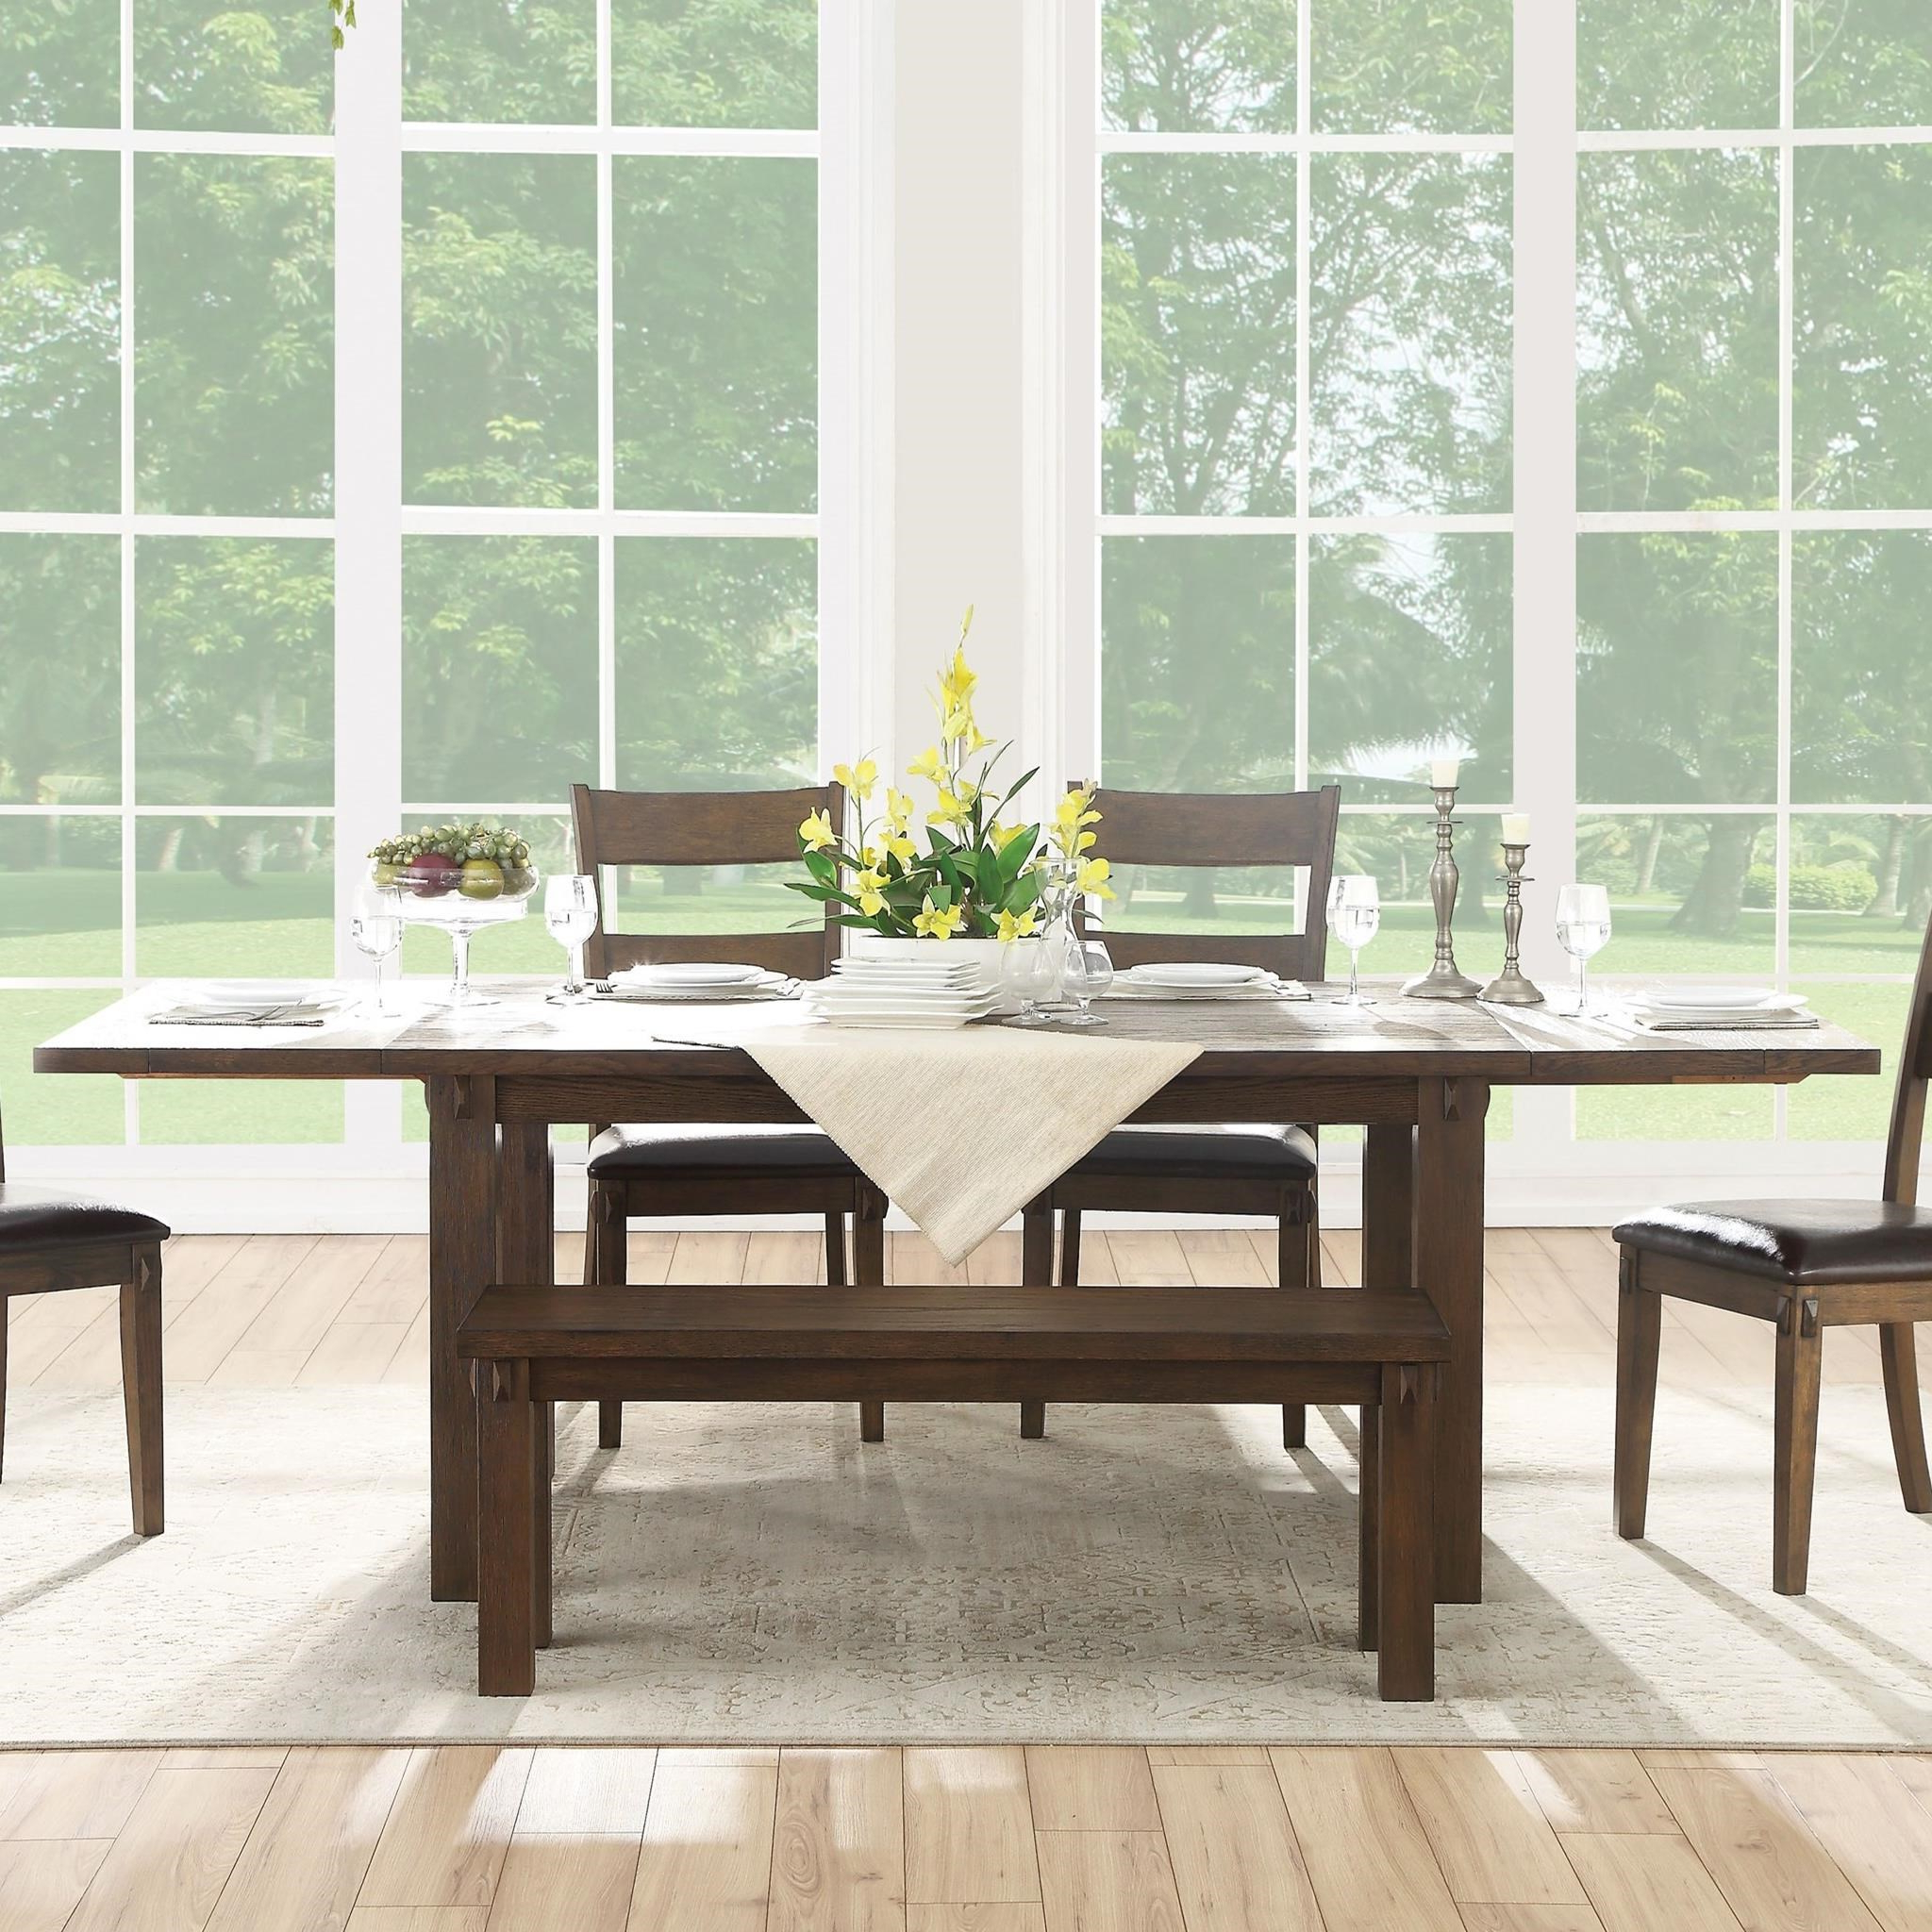 2017 Bistro Transitional 4 Seating Square Dining Tables Pertaining To Acme Furniture Nabirye Transitional Dining Table With (View 20 of 30)